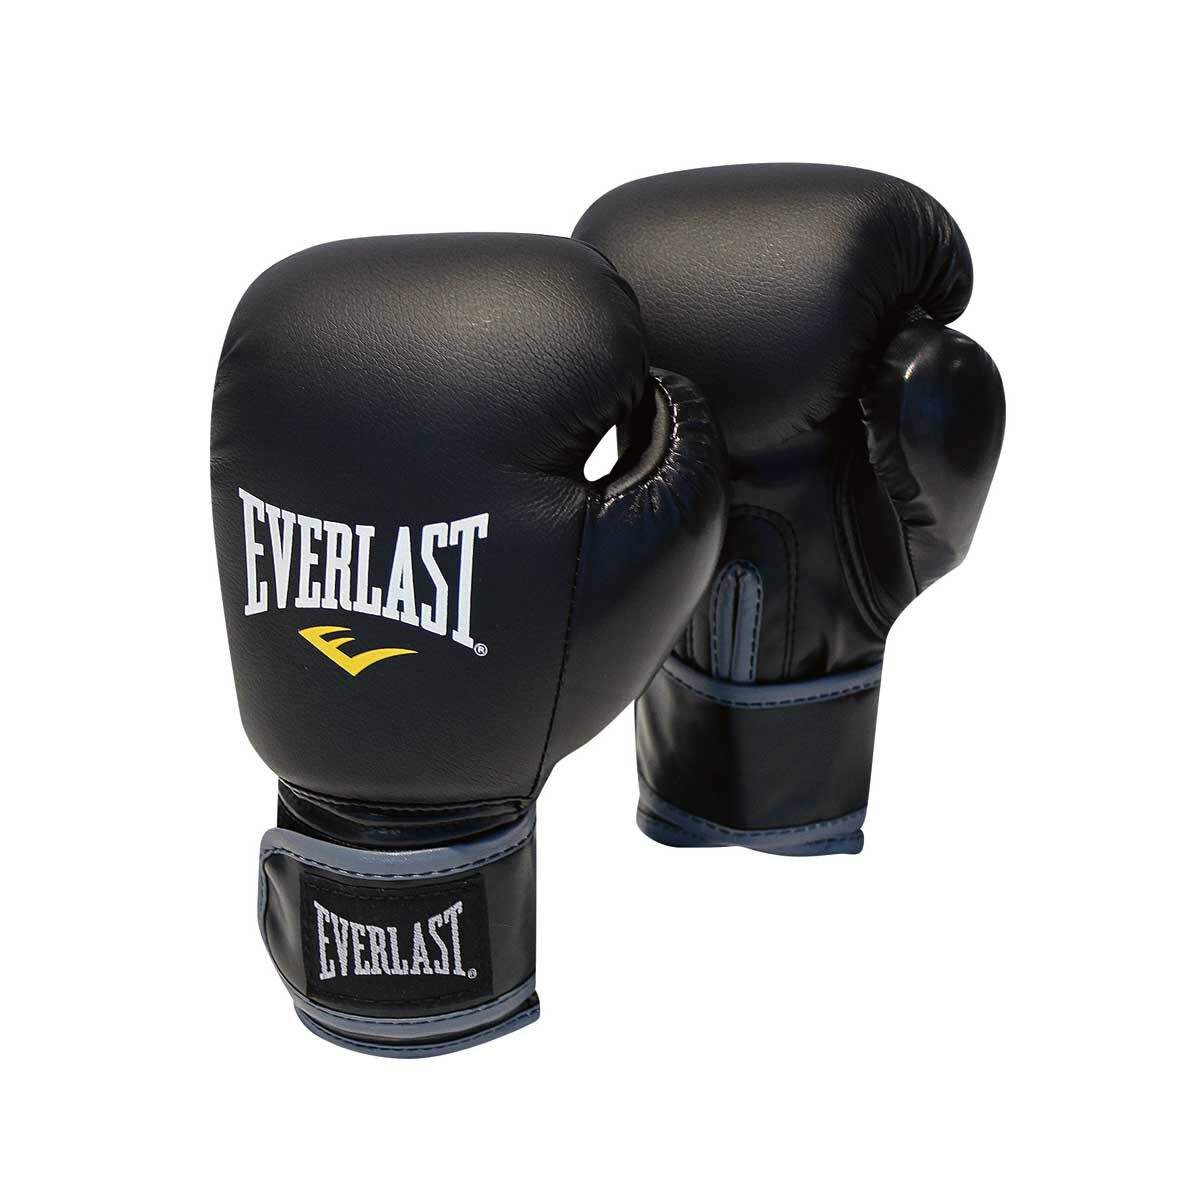 everlast boxing gloves